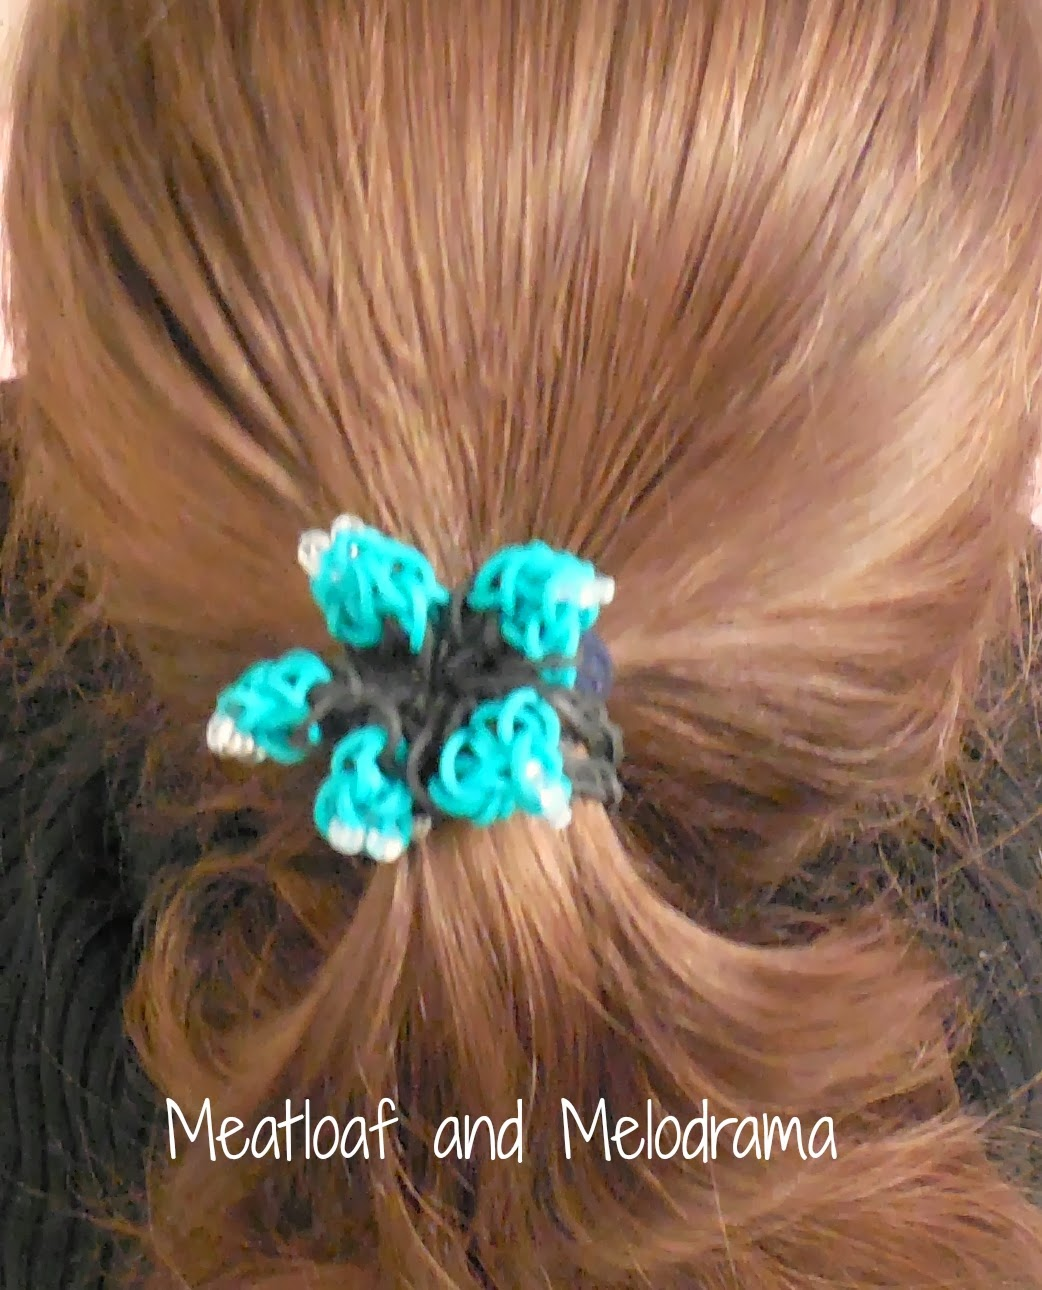 loom band hair tie, flower hair tie